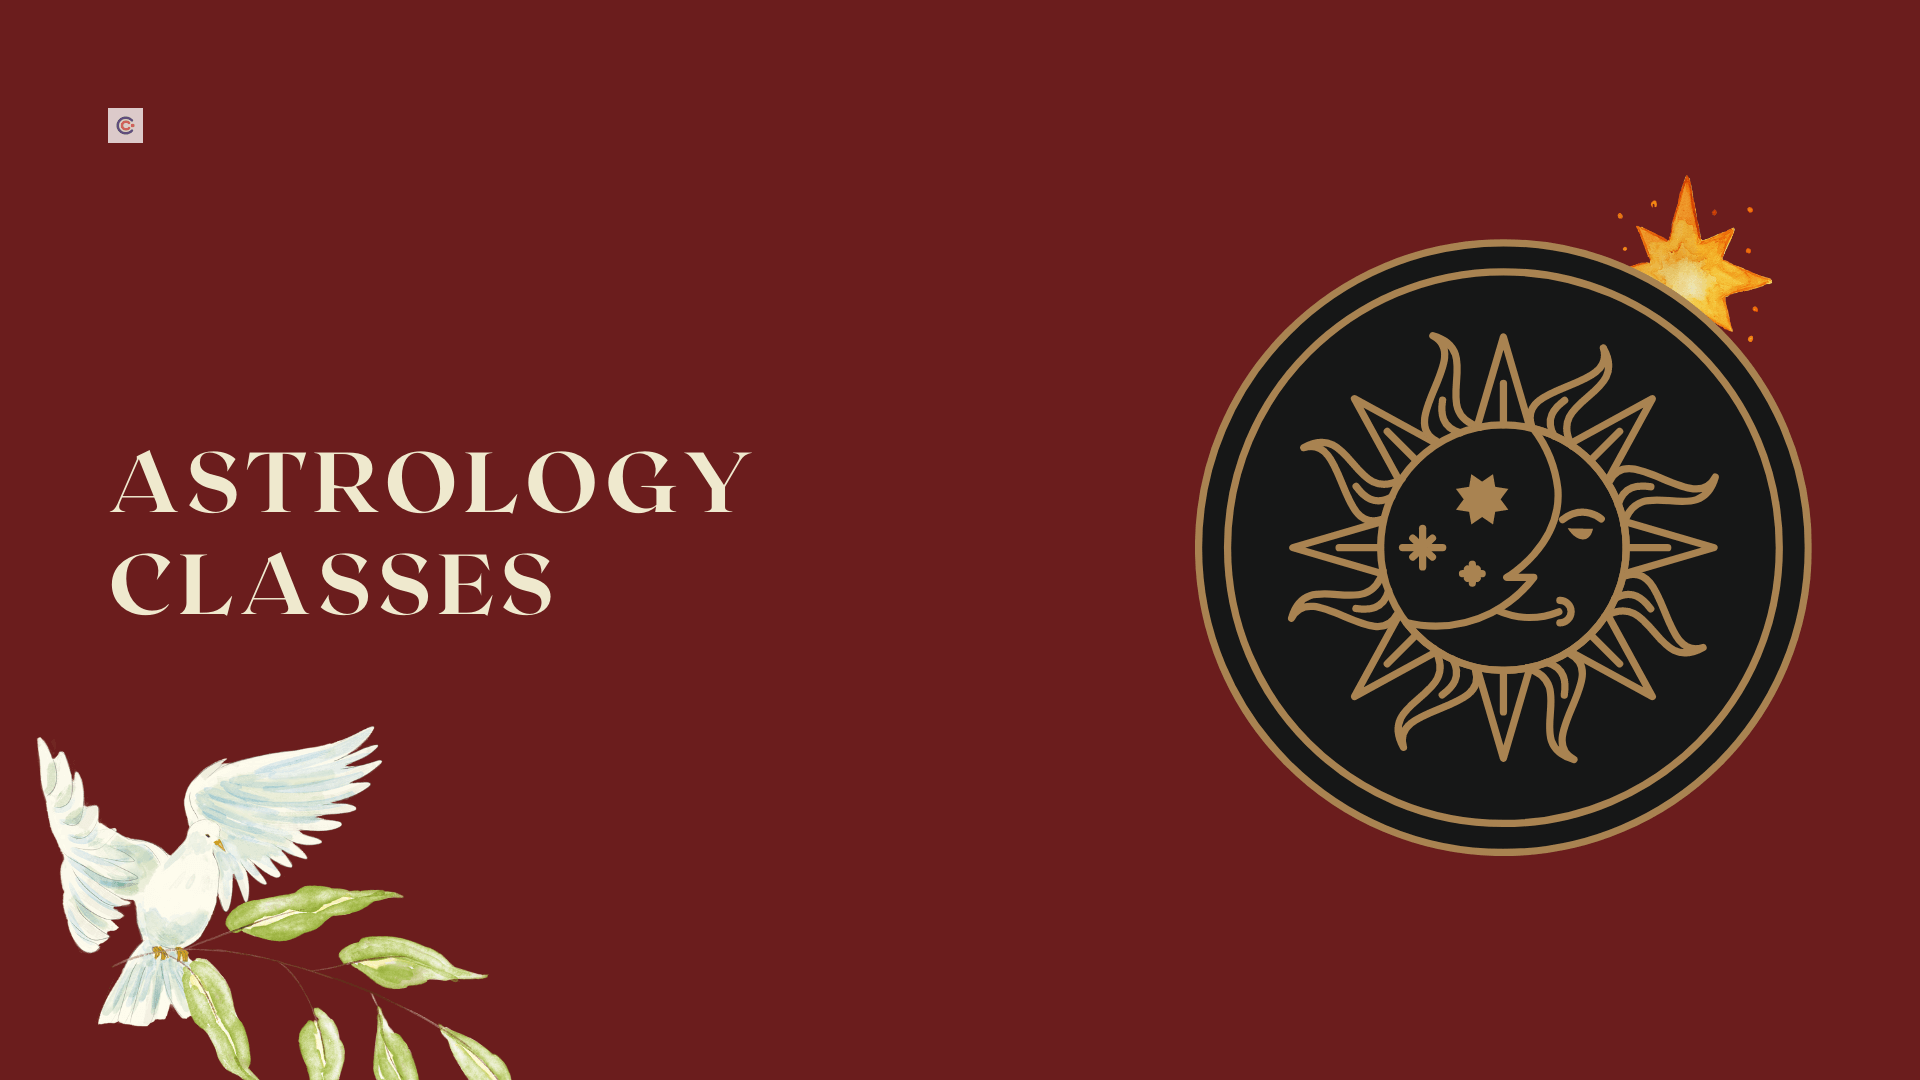 5 Best Astrology Classes - Learn about Astrology Online